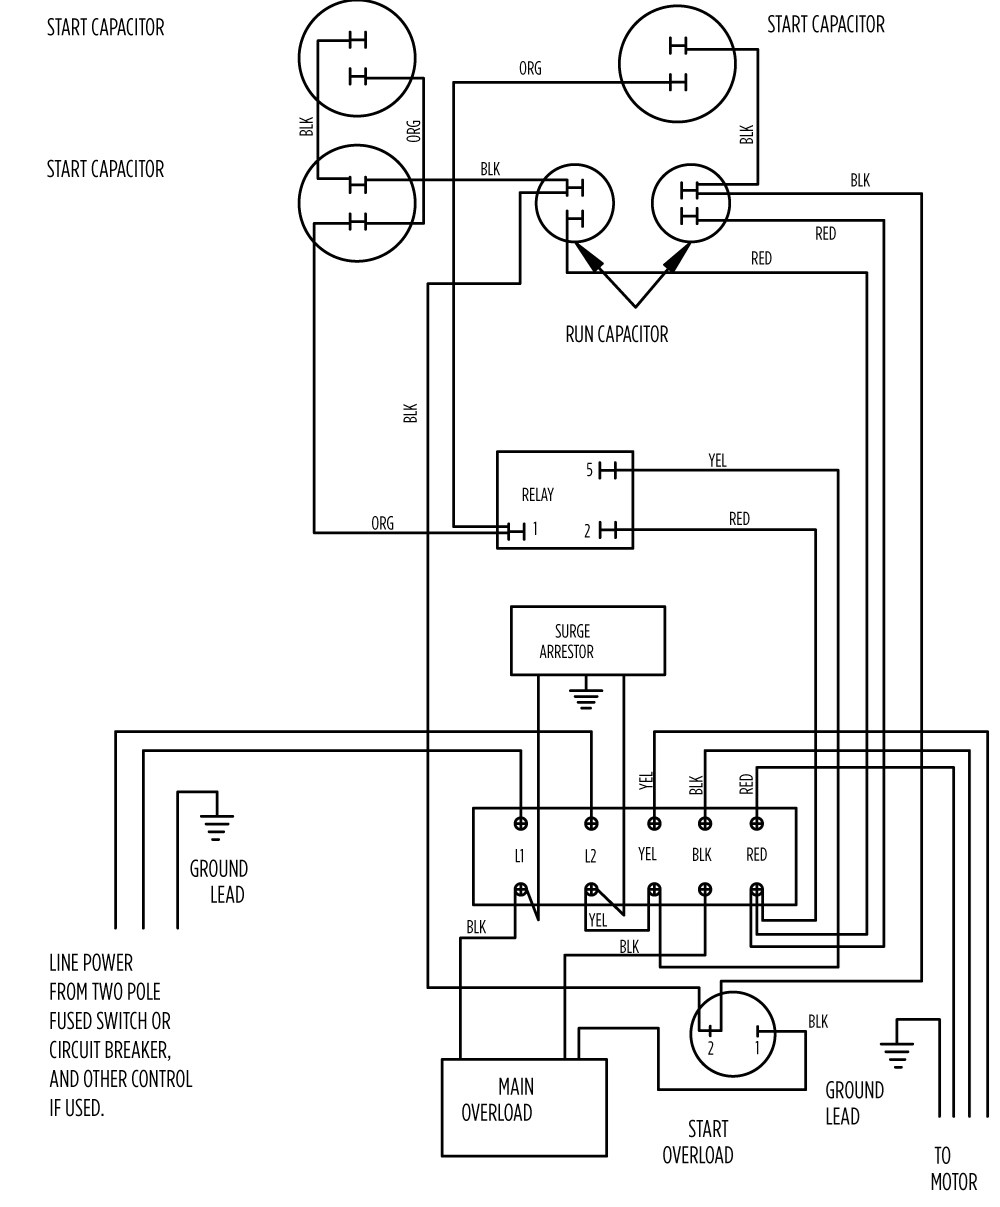 10 hp standard 282 202 9210 or 282 202 9230_aim gallery?format=jpg&quality=80 aim manual page 57 single phase motors and controls motor Single-Phase Motor Reversing Diagram at bayanpartner.co